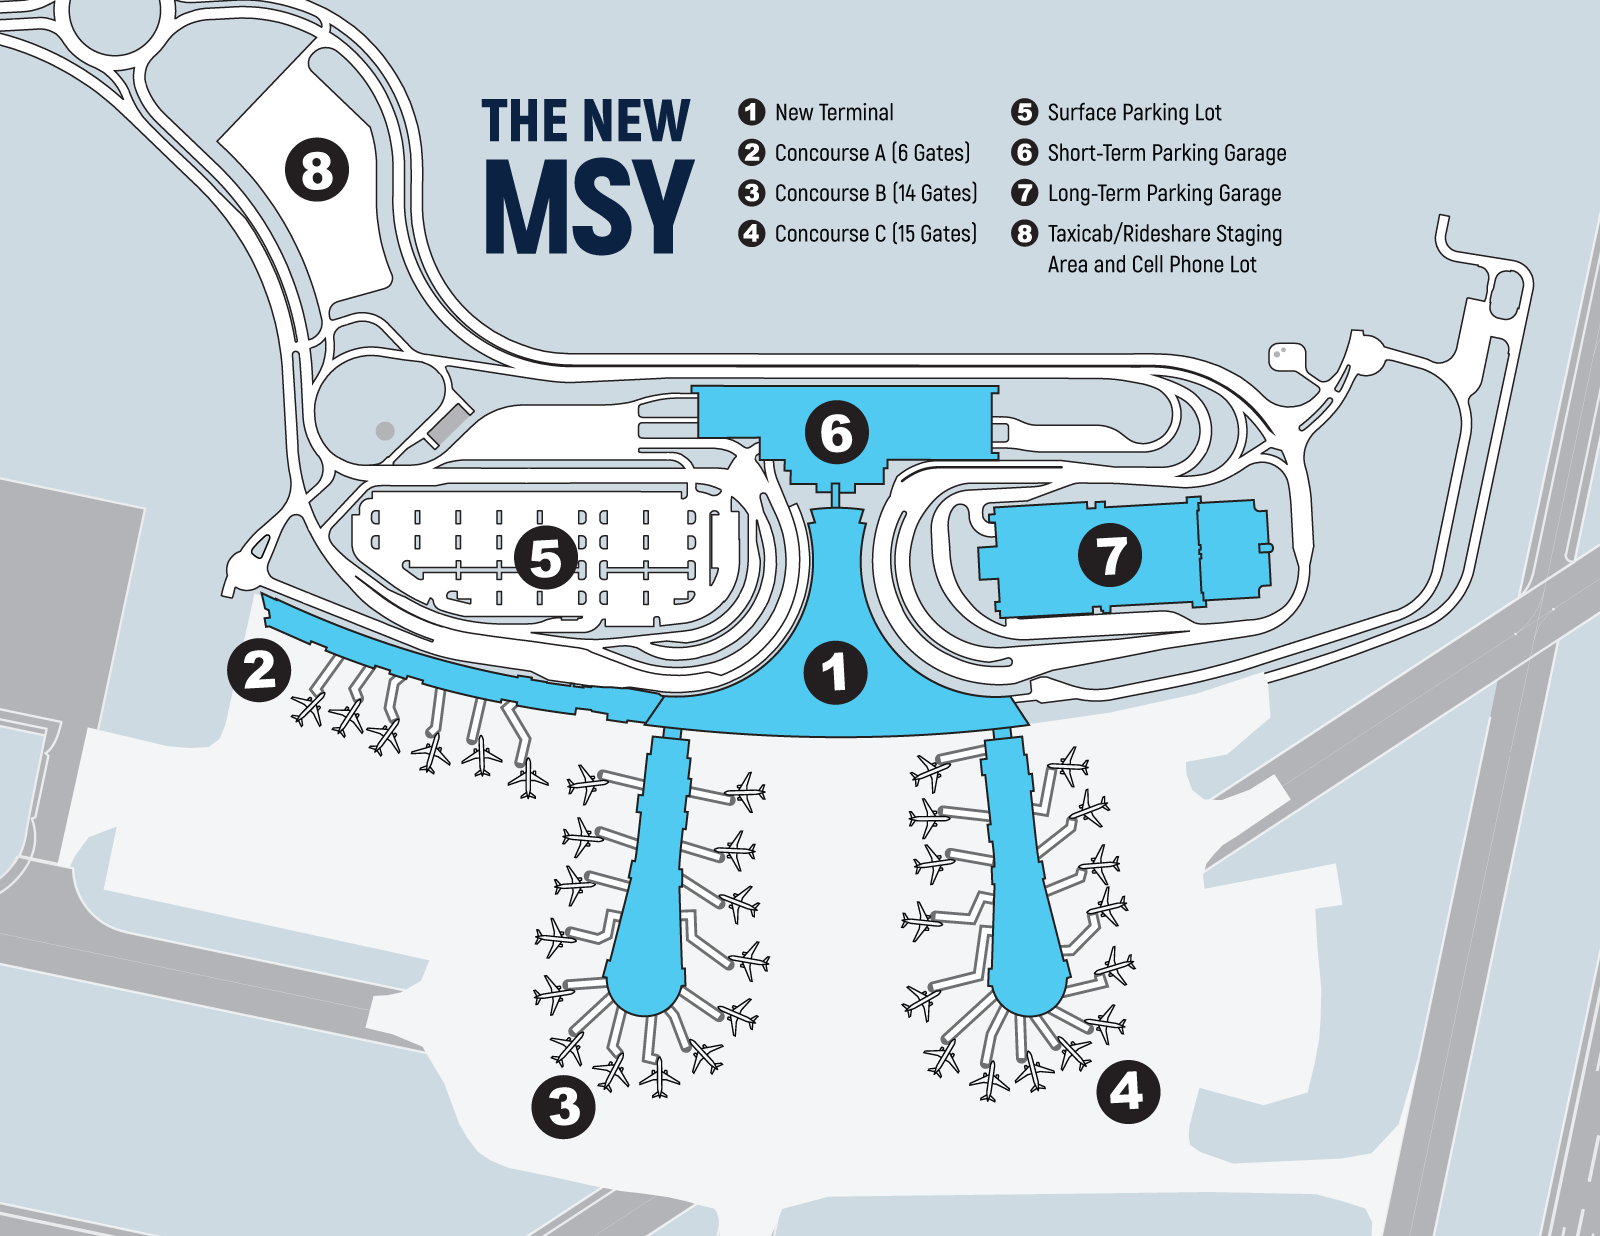 map of new orleans airport The Facility The New Msy Get Updates map of new orleans airport